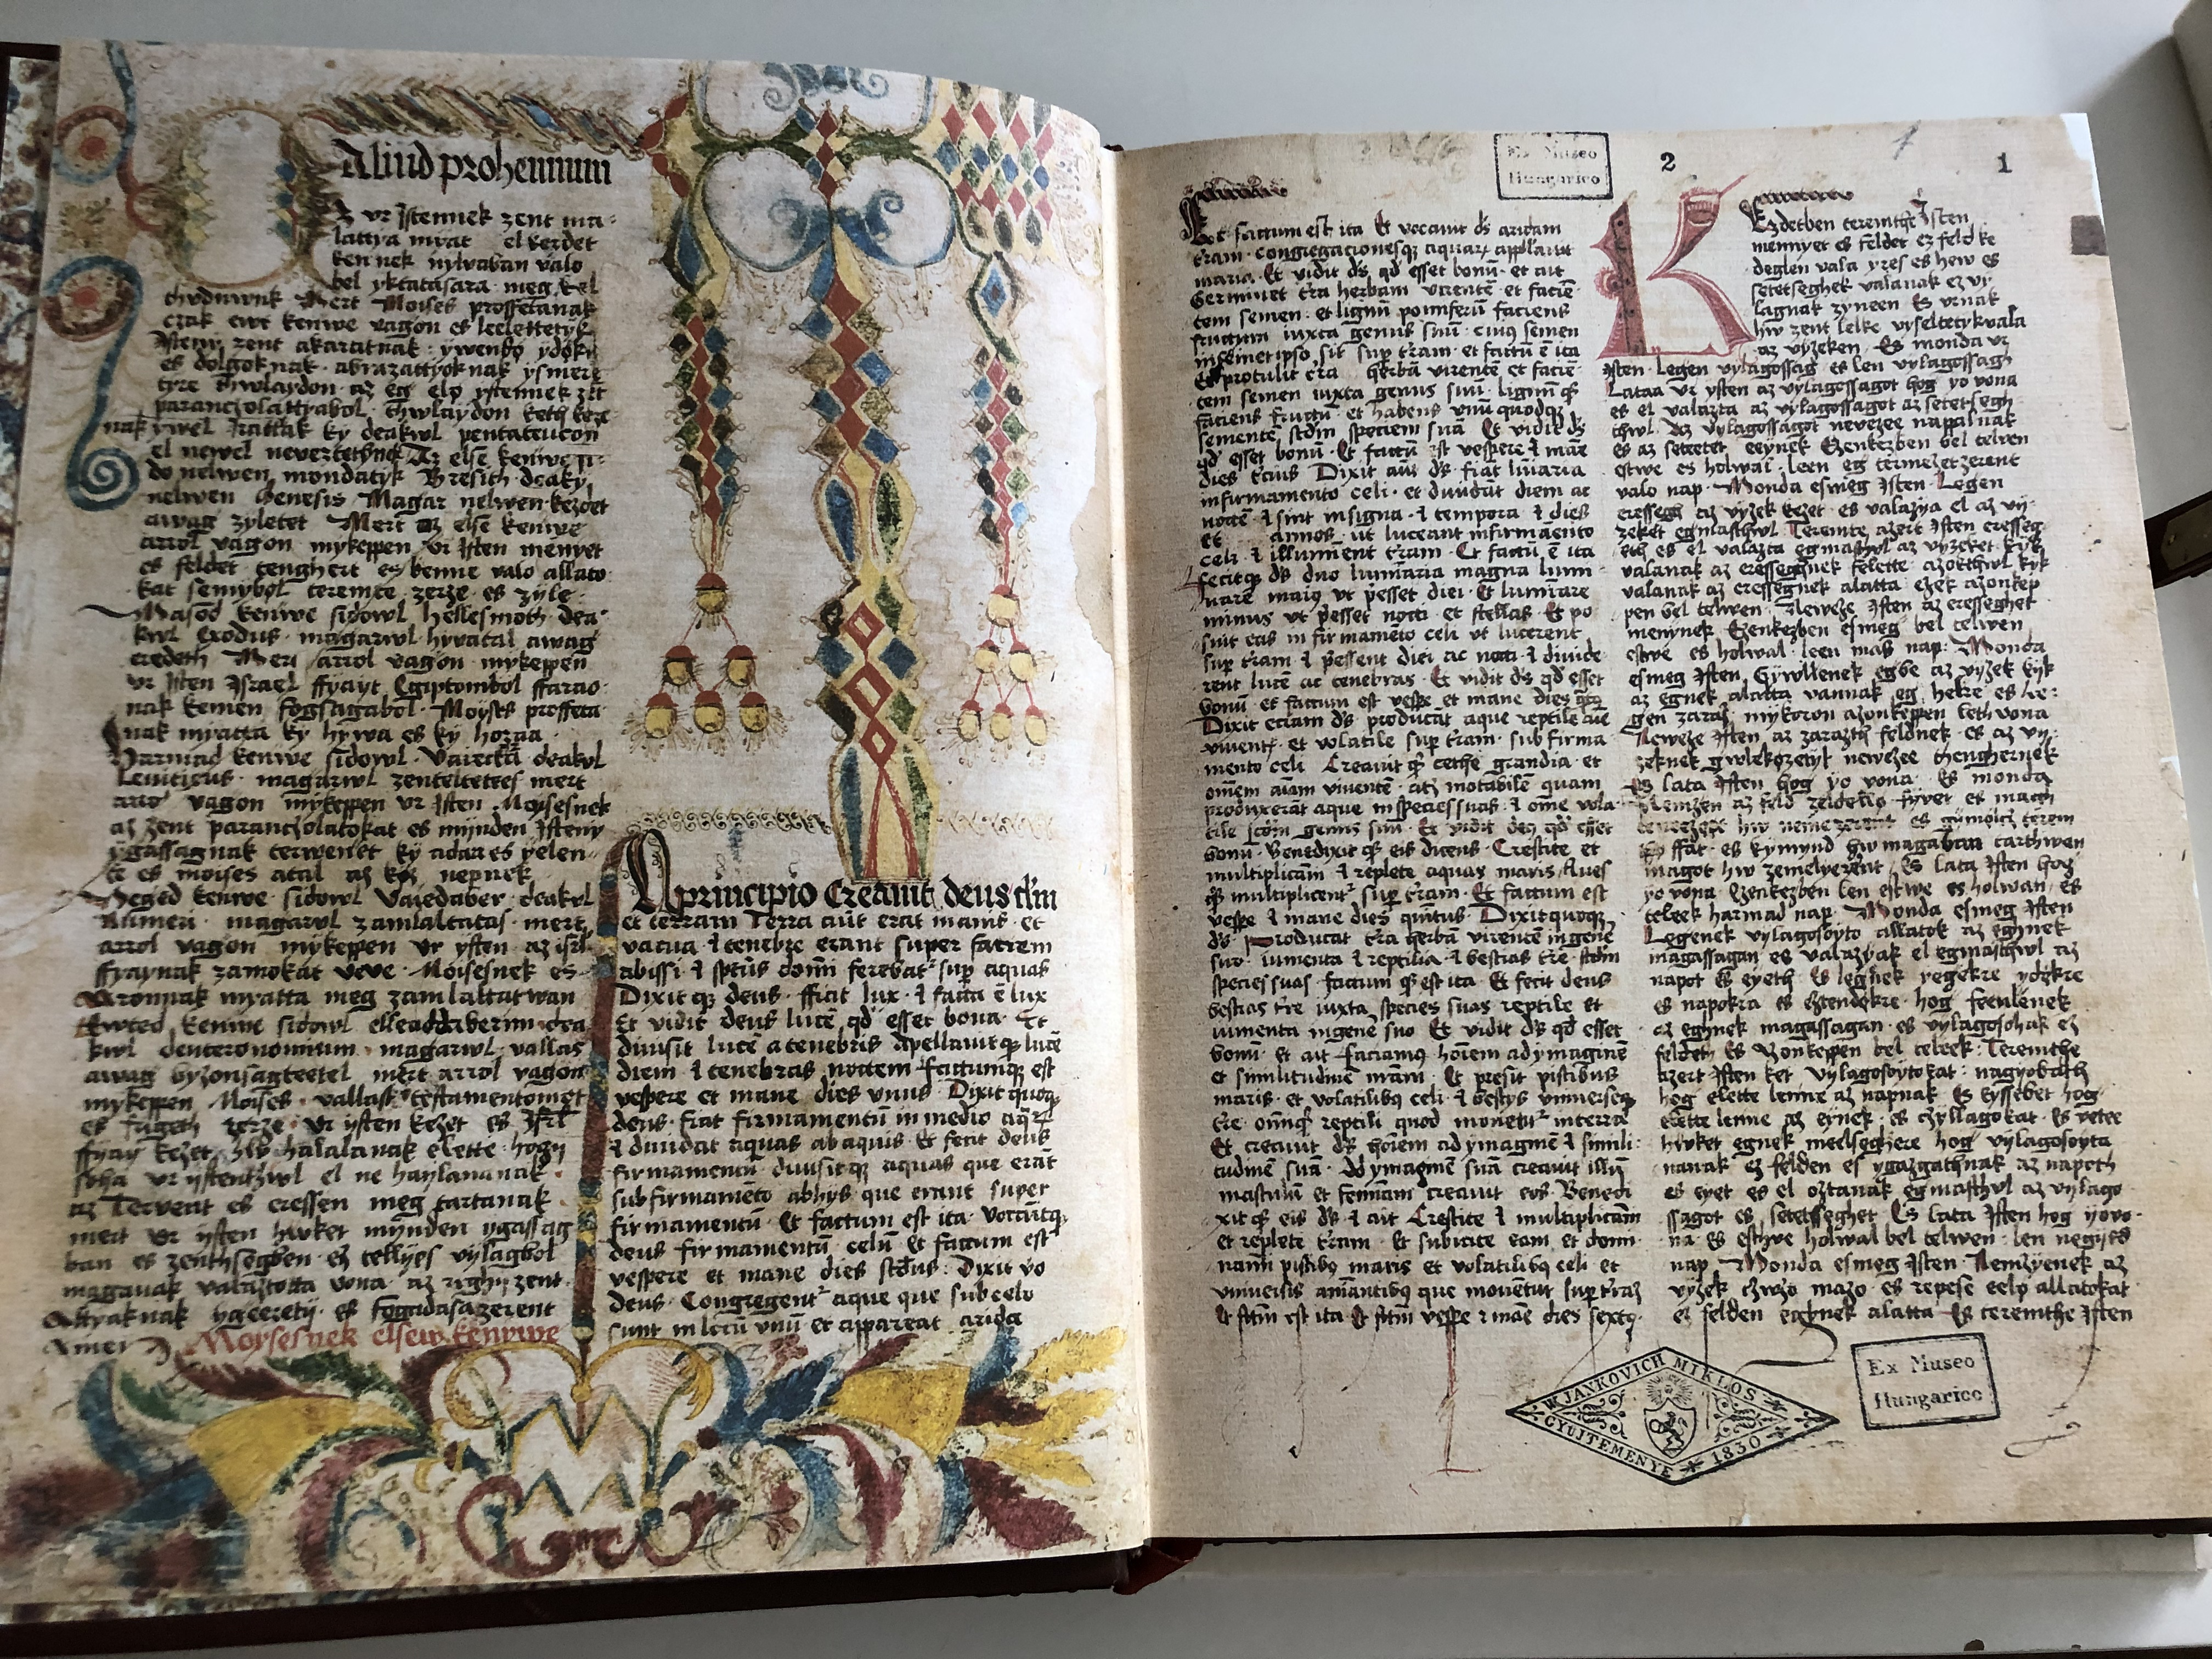 a-jord-nszky-k-dex-1516-1519-3-book-set-hungarian-codex-reprint-containing-bible-translation-from-the-beginning-of-the-16th-century-transcription-of-the-codex-reading-help-and-essay-by-csaba-csapodi-helikon-kiad-12-.jpg